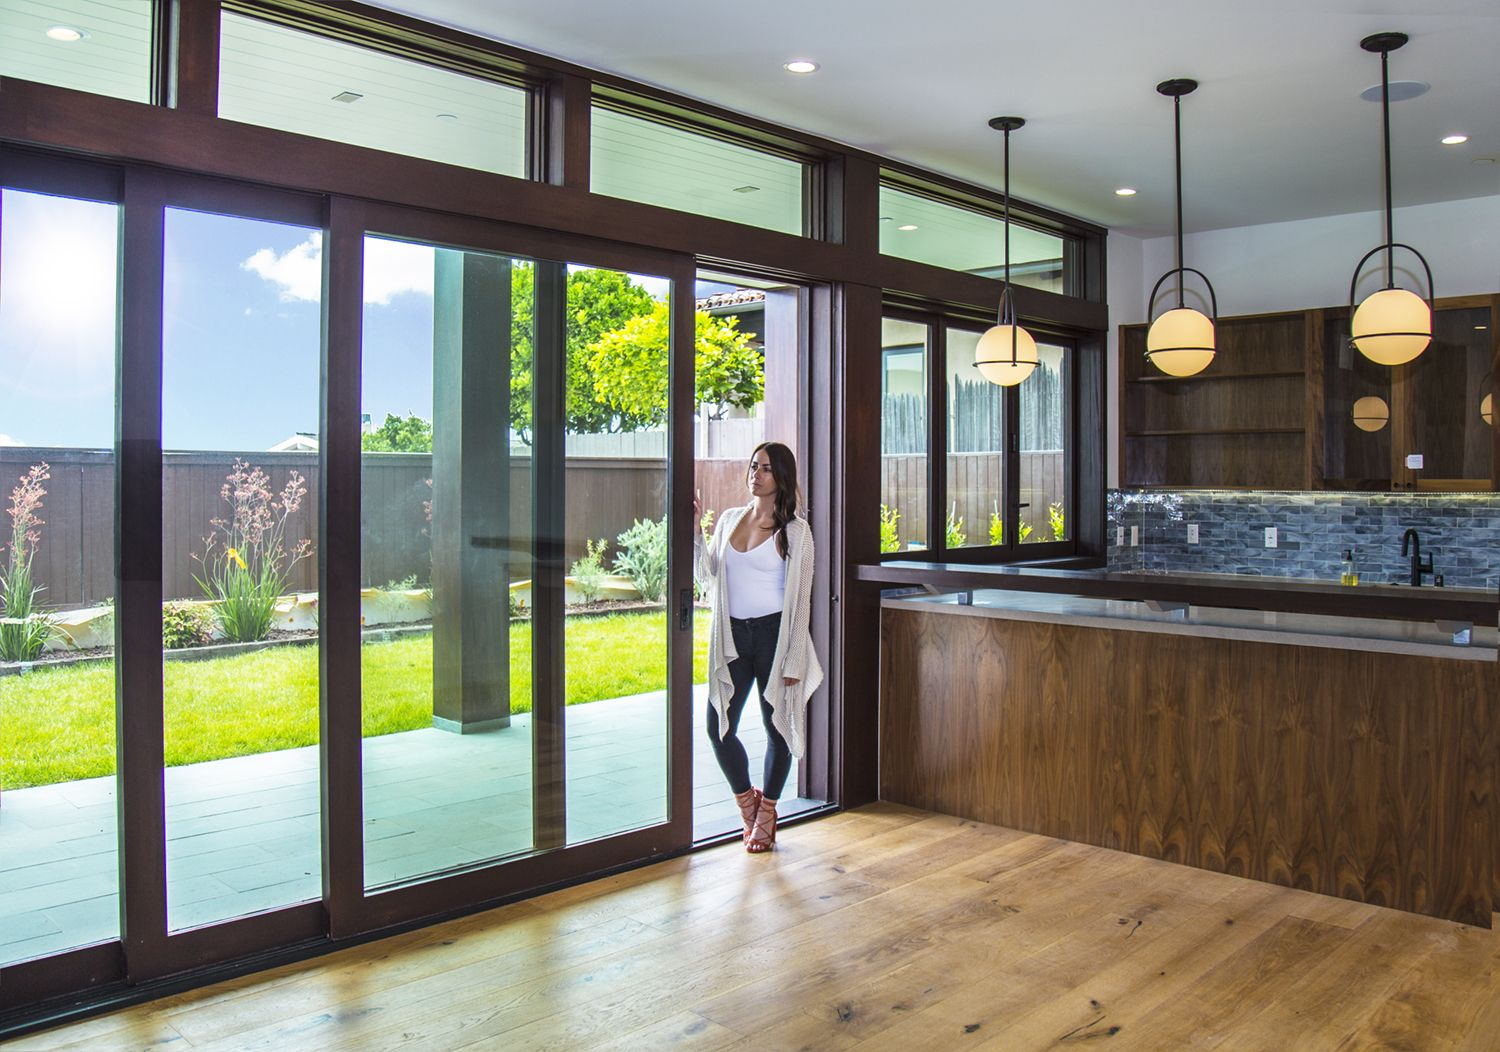 Gotta Love A Pocketing Multi Slide Door Creating An Open Space In This  Kitchen! #BifoldDoors #SlidingDoors #LuxuryHome #IndoorOutdoorLiving  #LuxuryLifestyle ...